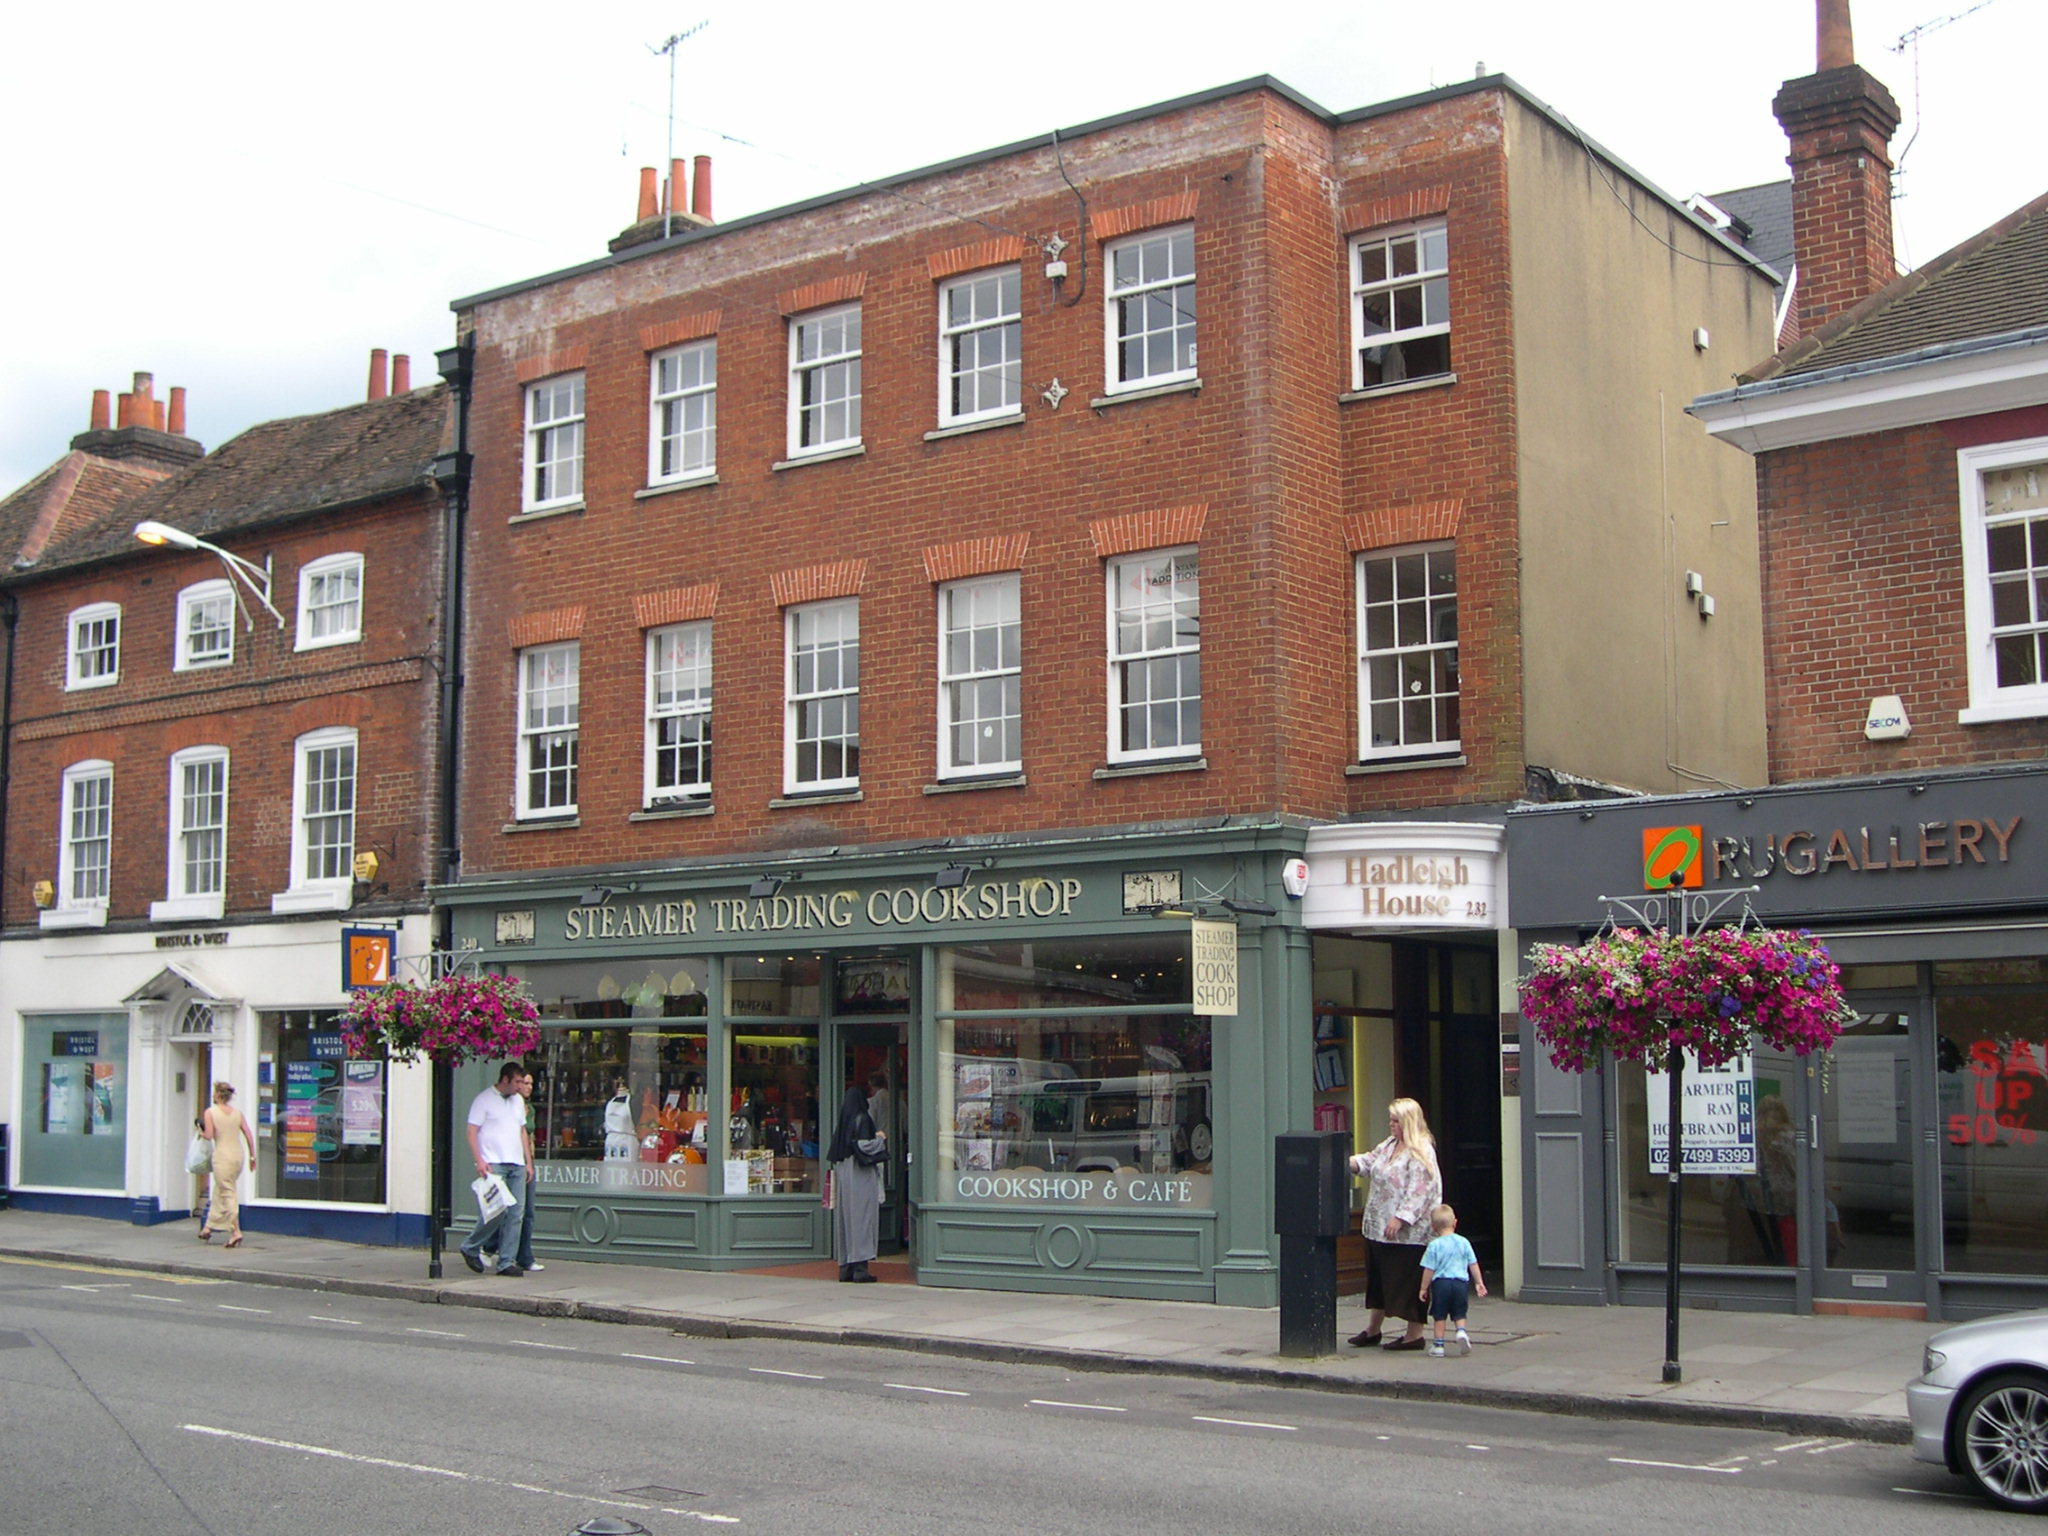 HADLEIGH HOUSE, 232 High Street, GUILDFORD - 1ST & 2ND FLOOR OFFICES - LETTING